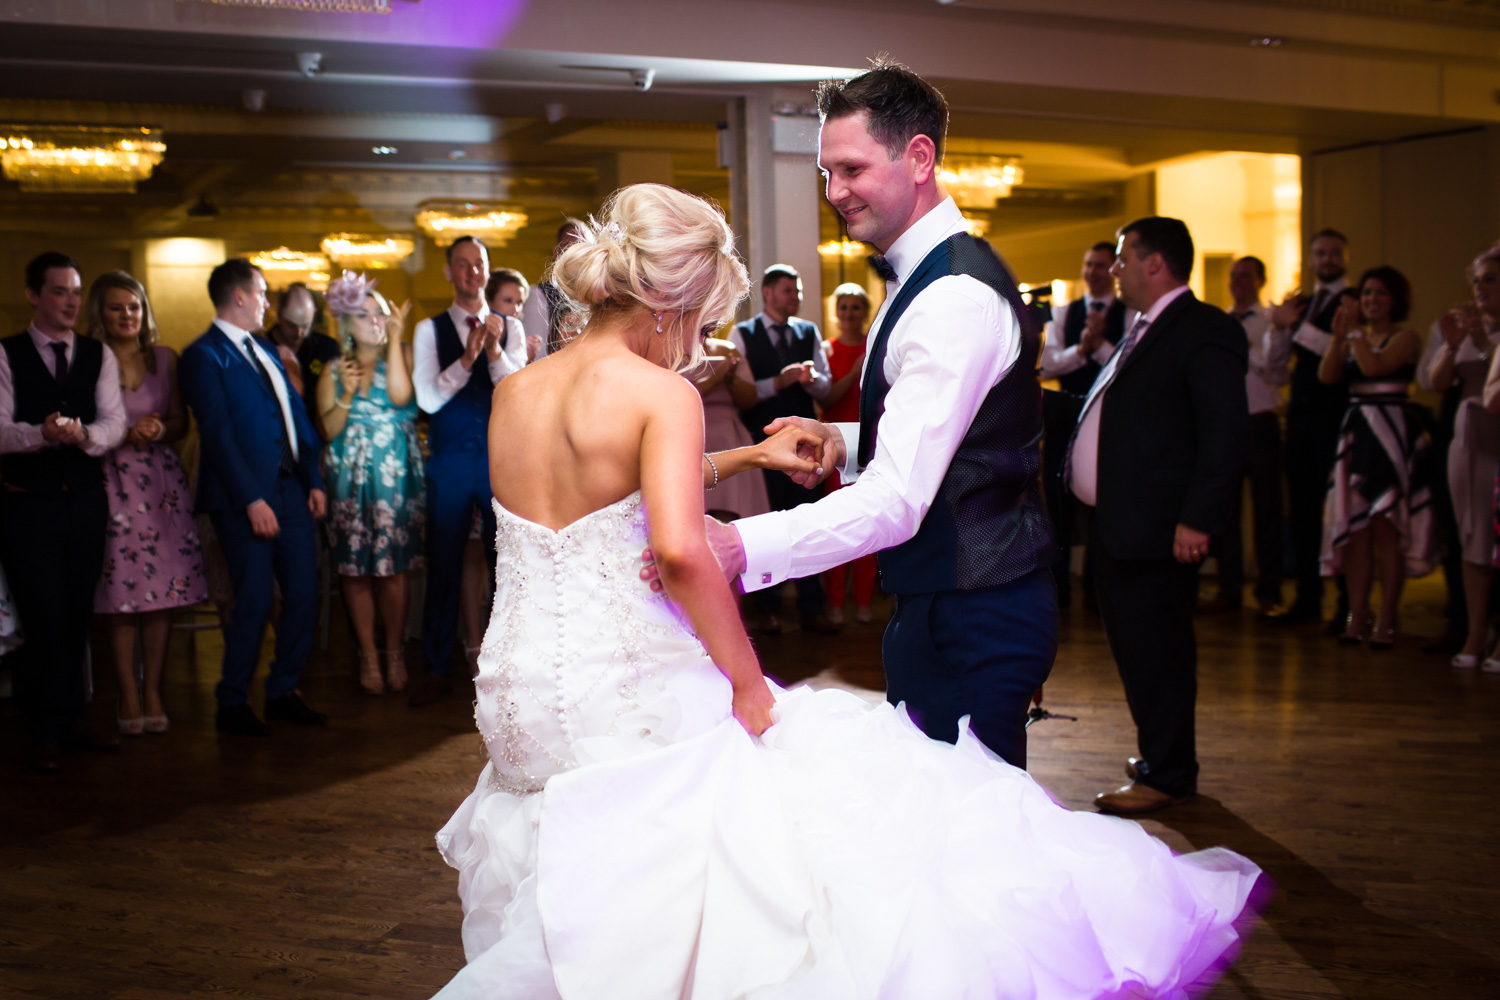 Mark_Barnes_wedding_photographer_Northern_Ireland_Wedding_photography_Carlingford_Four_Seasons_Wedding-55.jpg